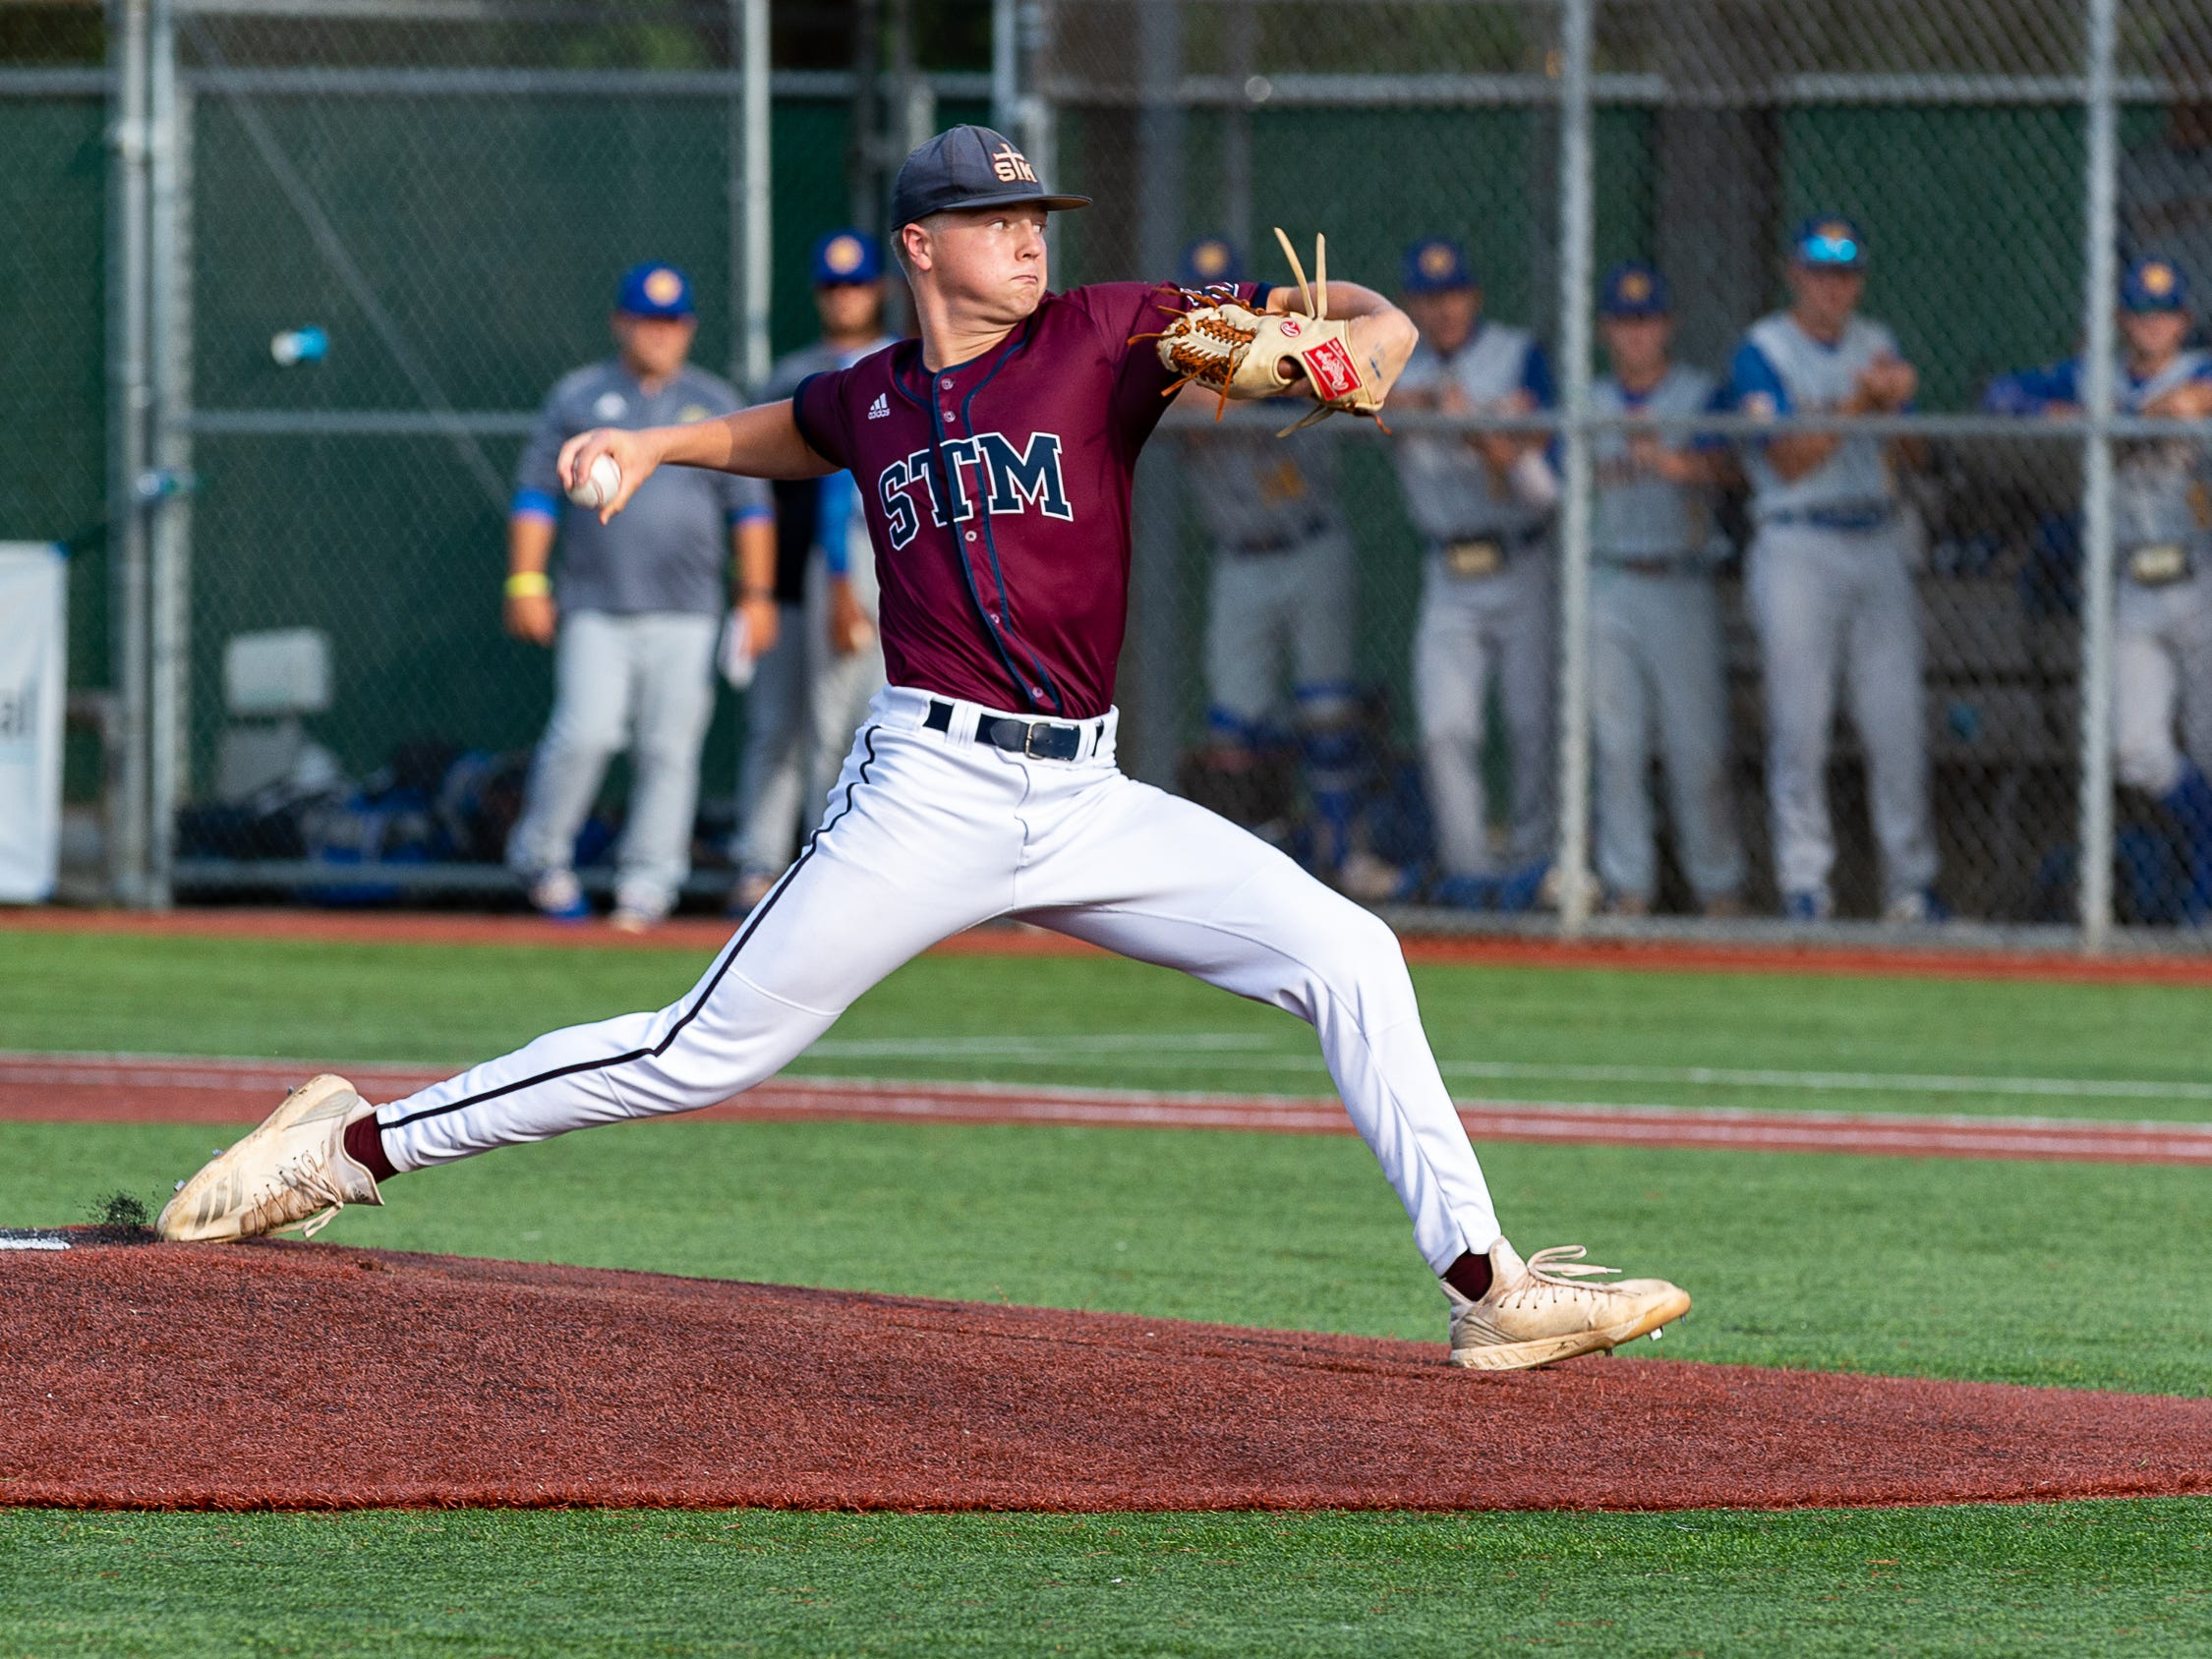 Drew McDaniel on the mound as St Thomas More takes on St Charles  in the Div II semi final round at the LHSAA State Championship. . Sunday, May 12, 2019.